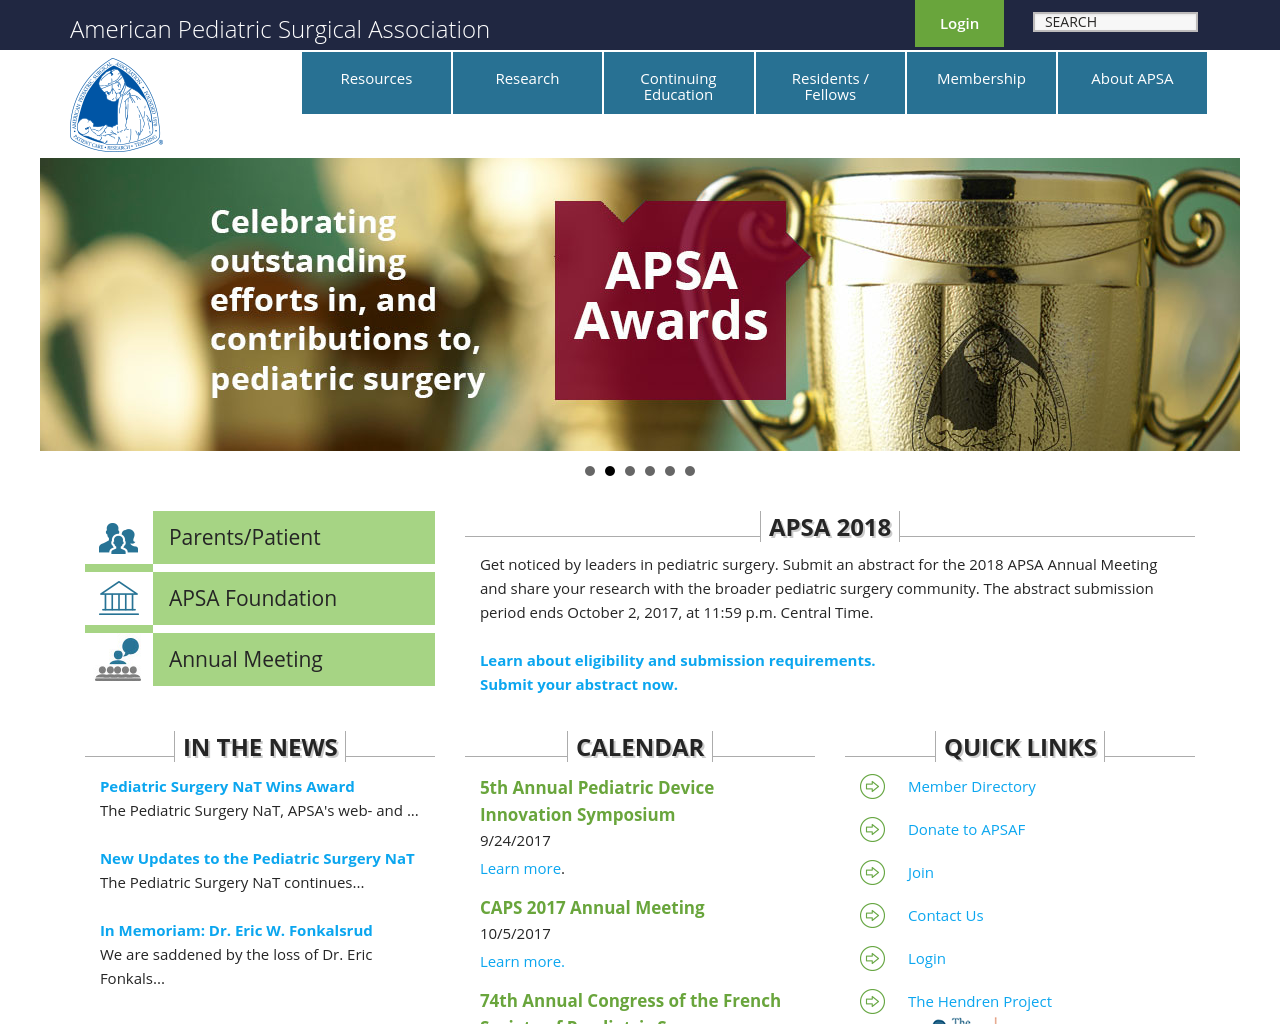 APSA-Advertising-Reviews-Pricing